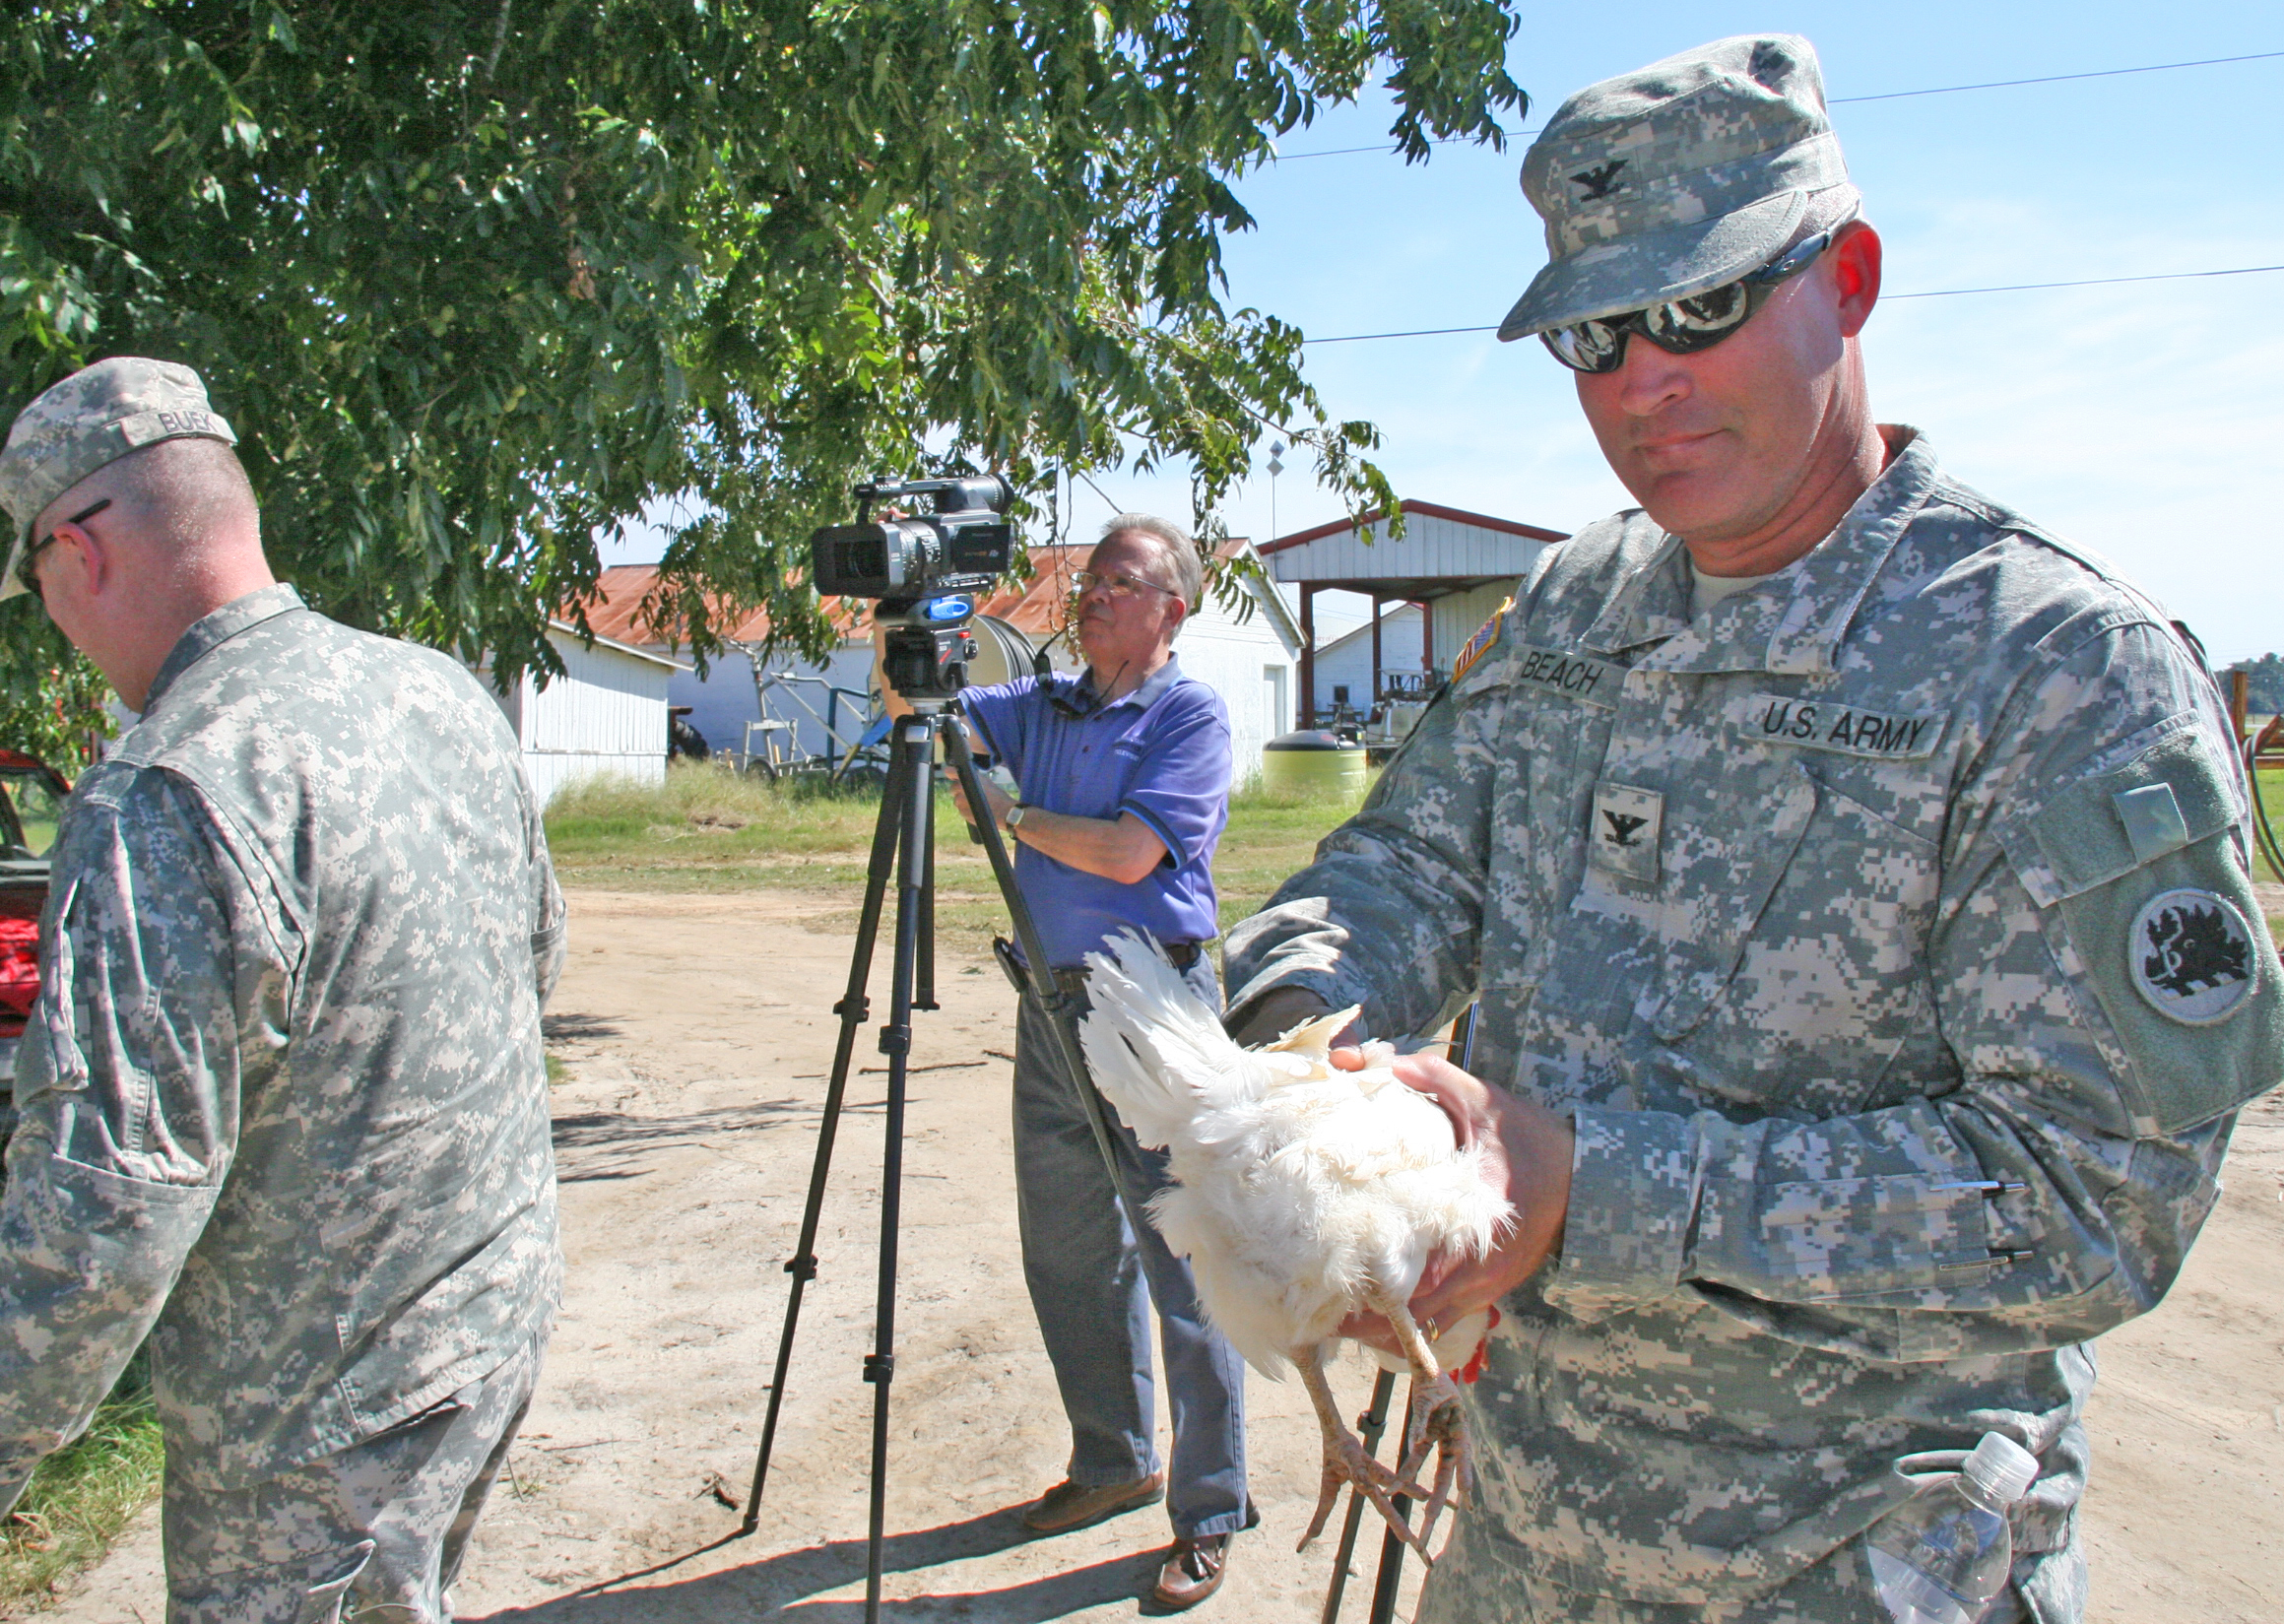 Georgia National Guard Col. Barry Beach gets comfortable holding a chicken as his unit Agribusiness Development Team III trains in Tifton ahead of their deployment to Afghanistan.